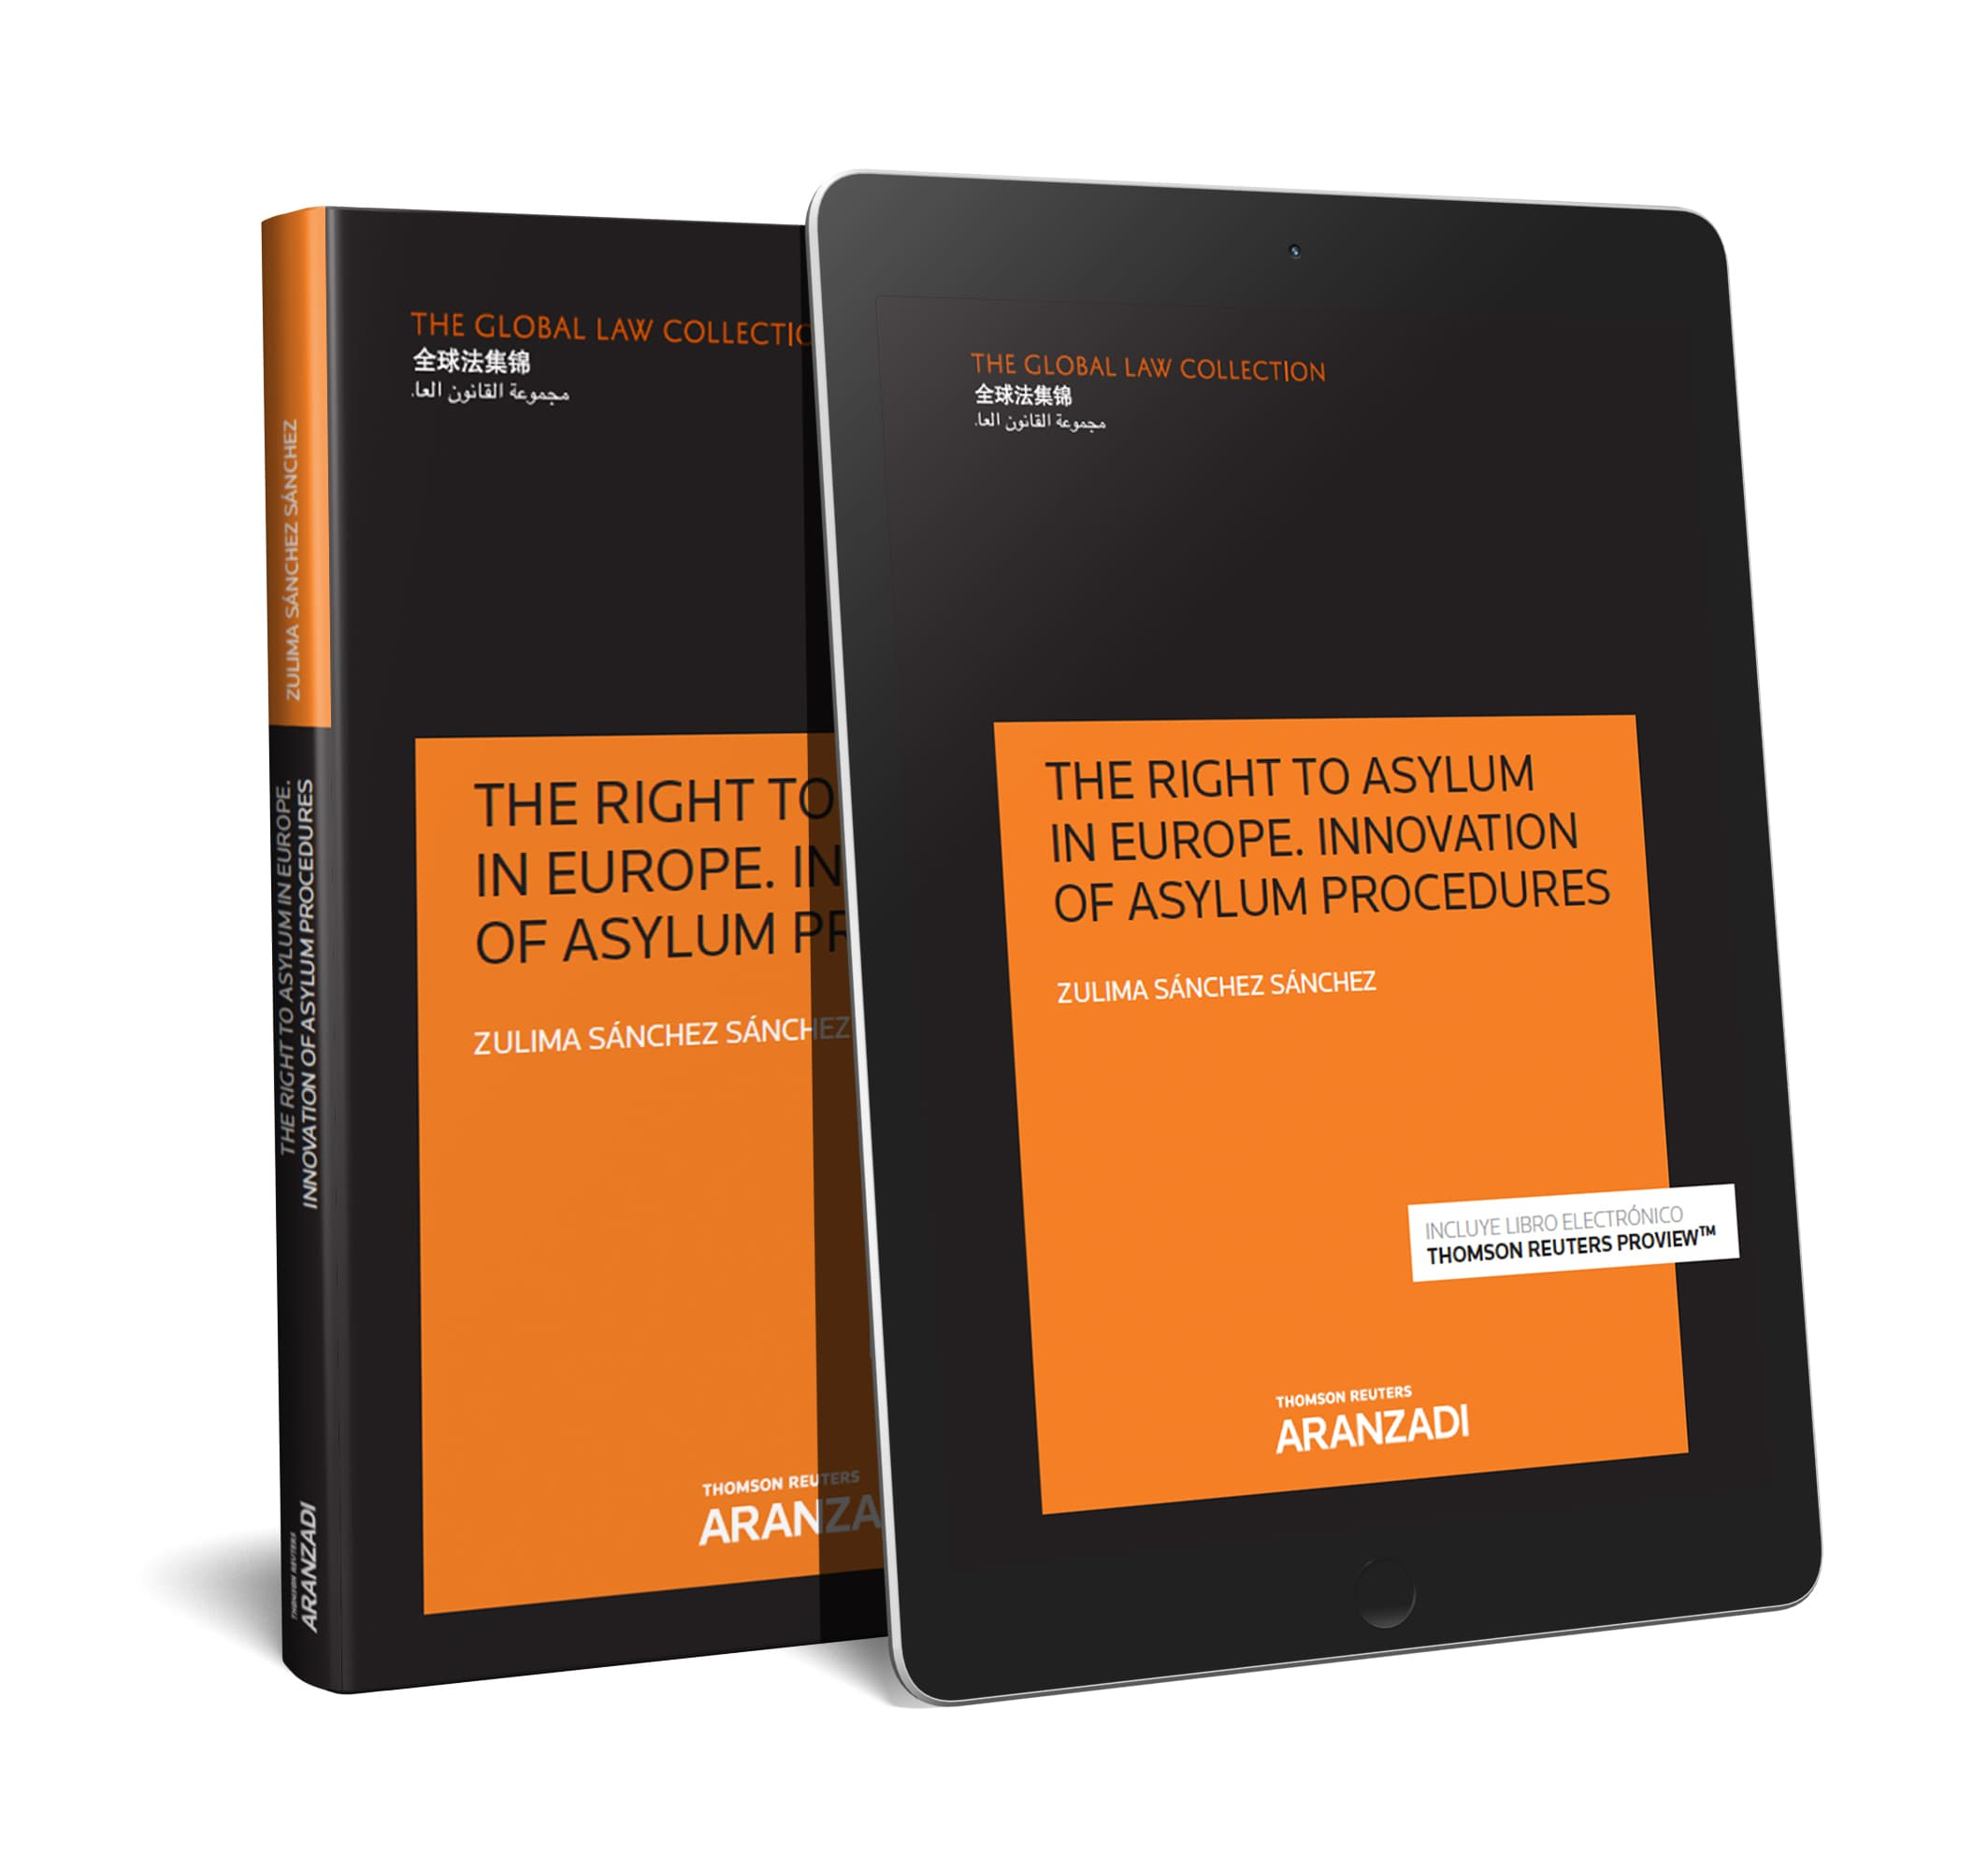 THE RIGHT TO ASYLUM IN EUROPE (DUO). «INNOVATION OF ASYLUM PROCEDURES»